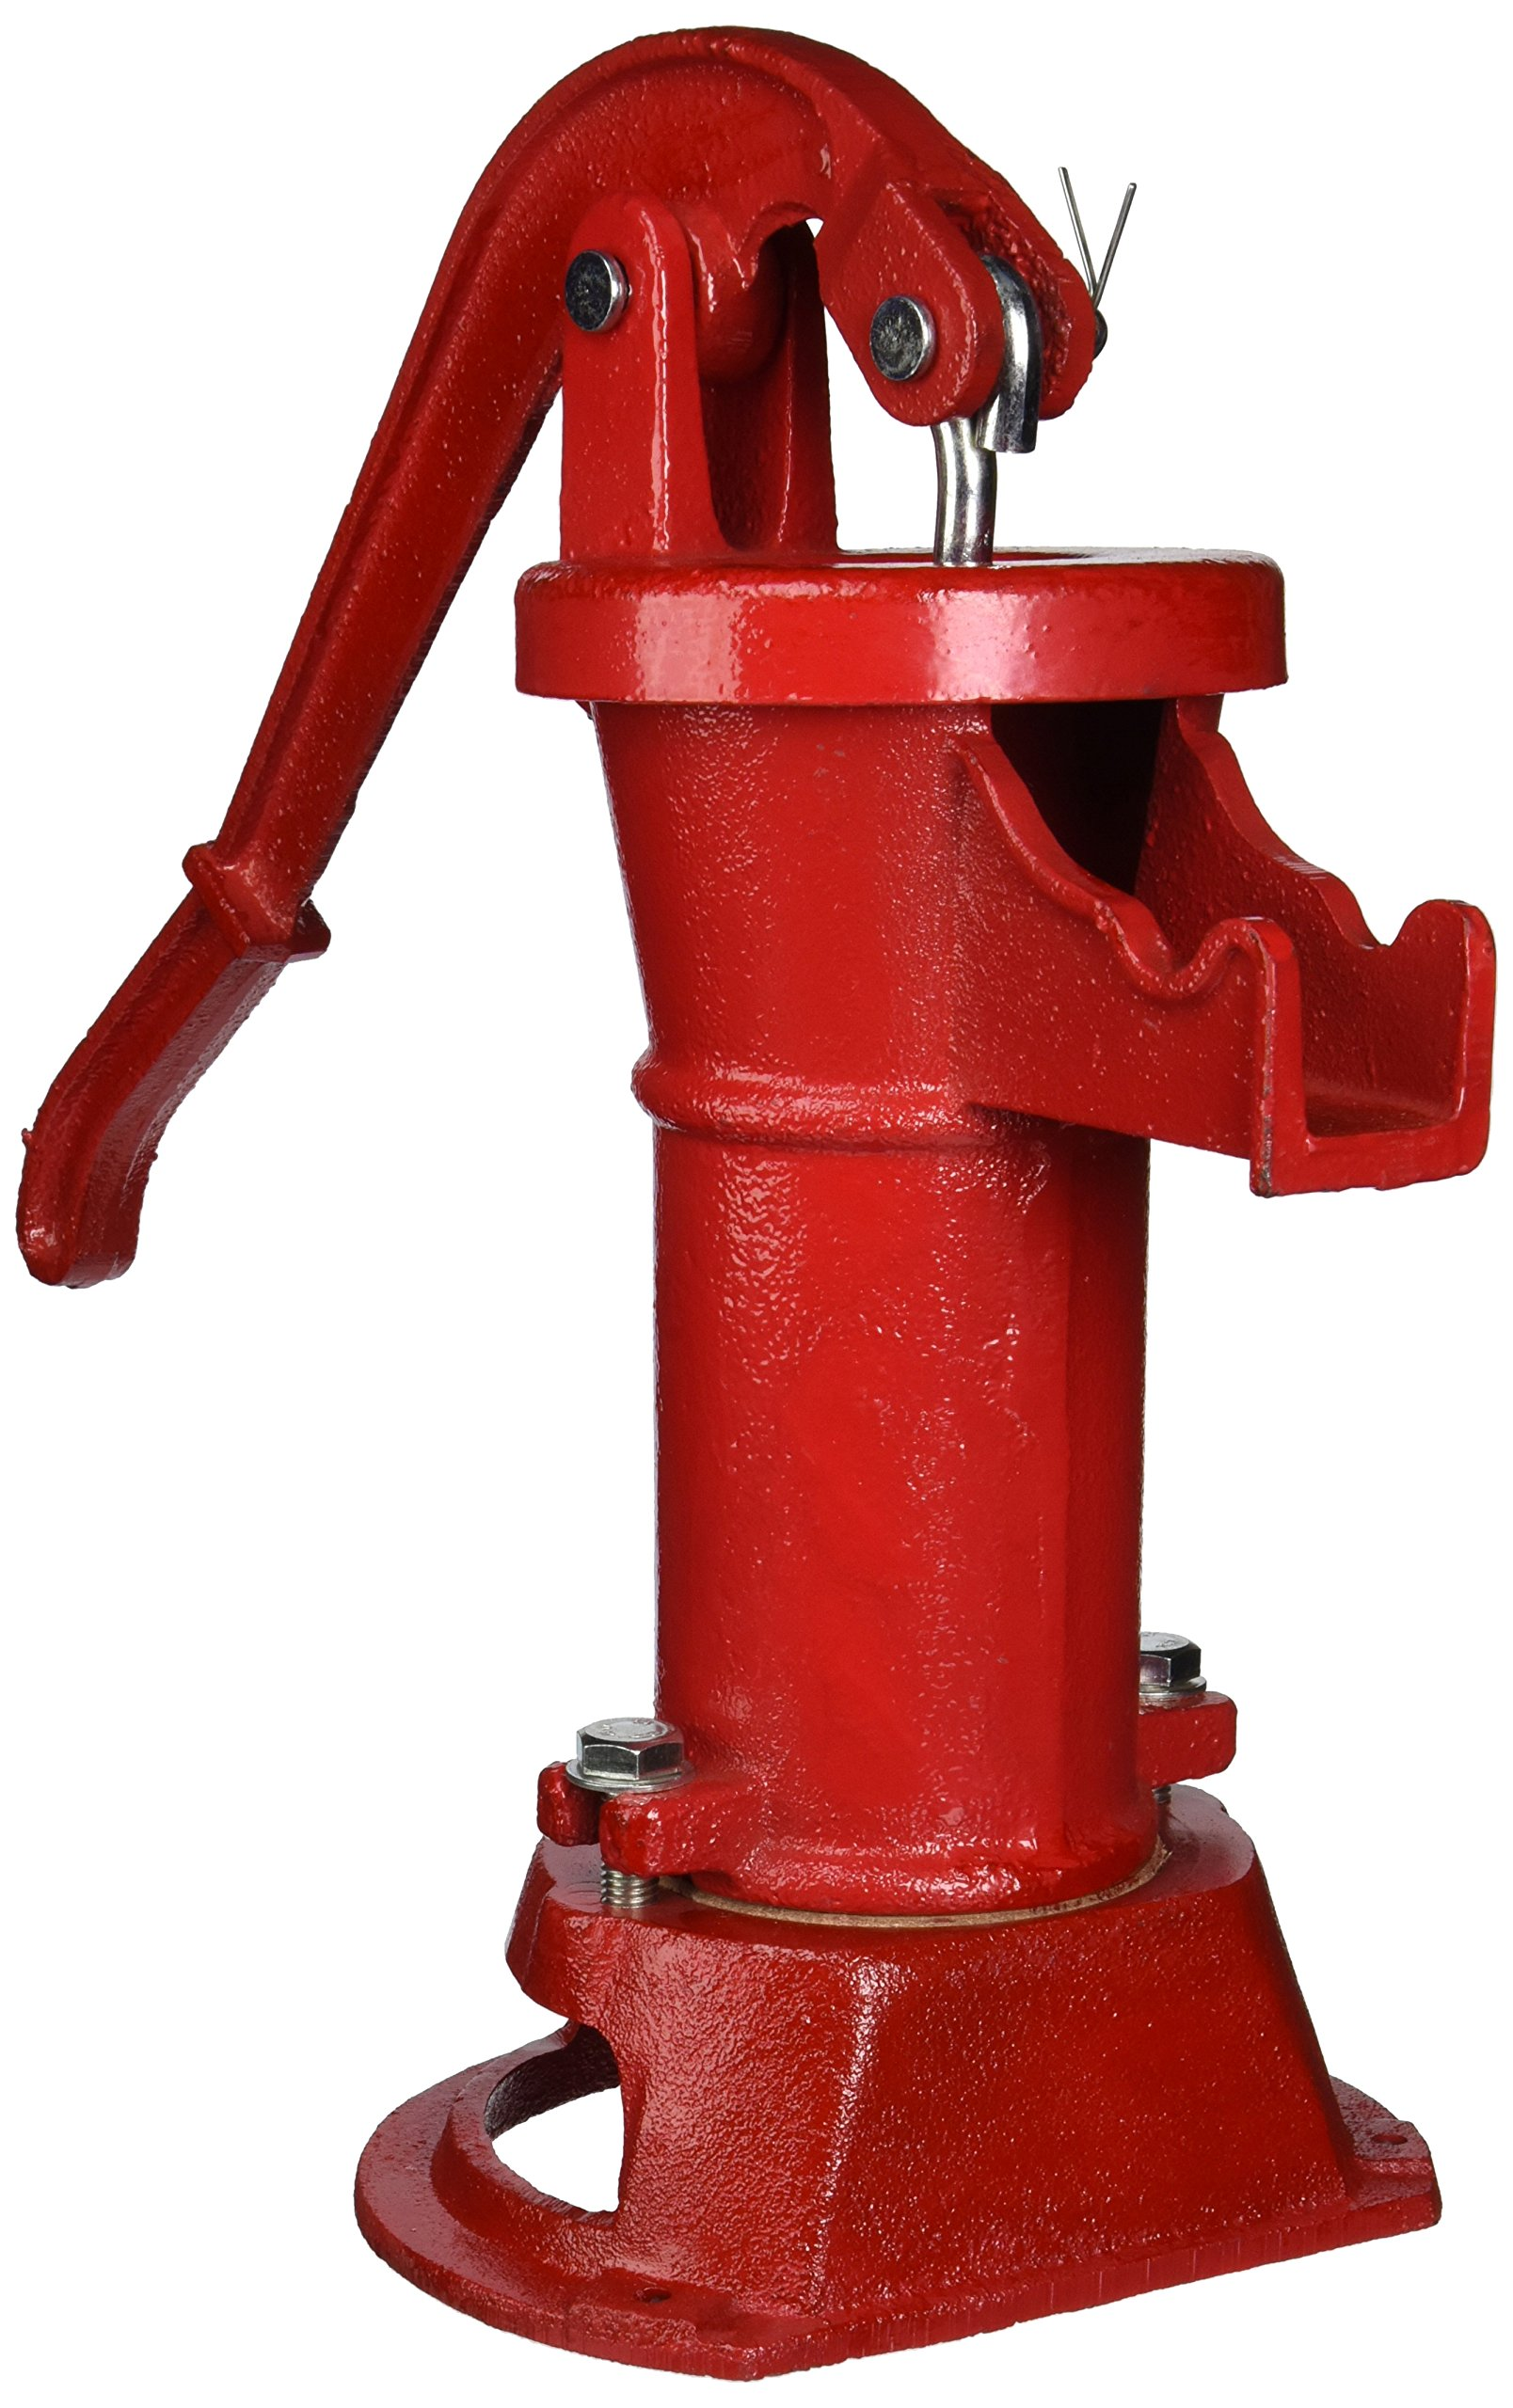 Simmons 1160/PM500 No.2 Pitcher Pump